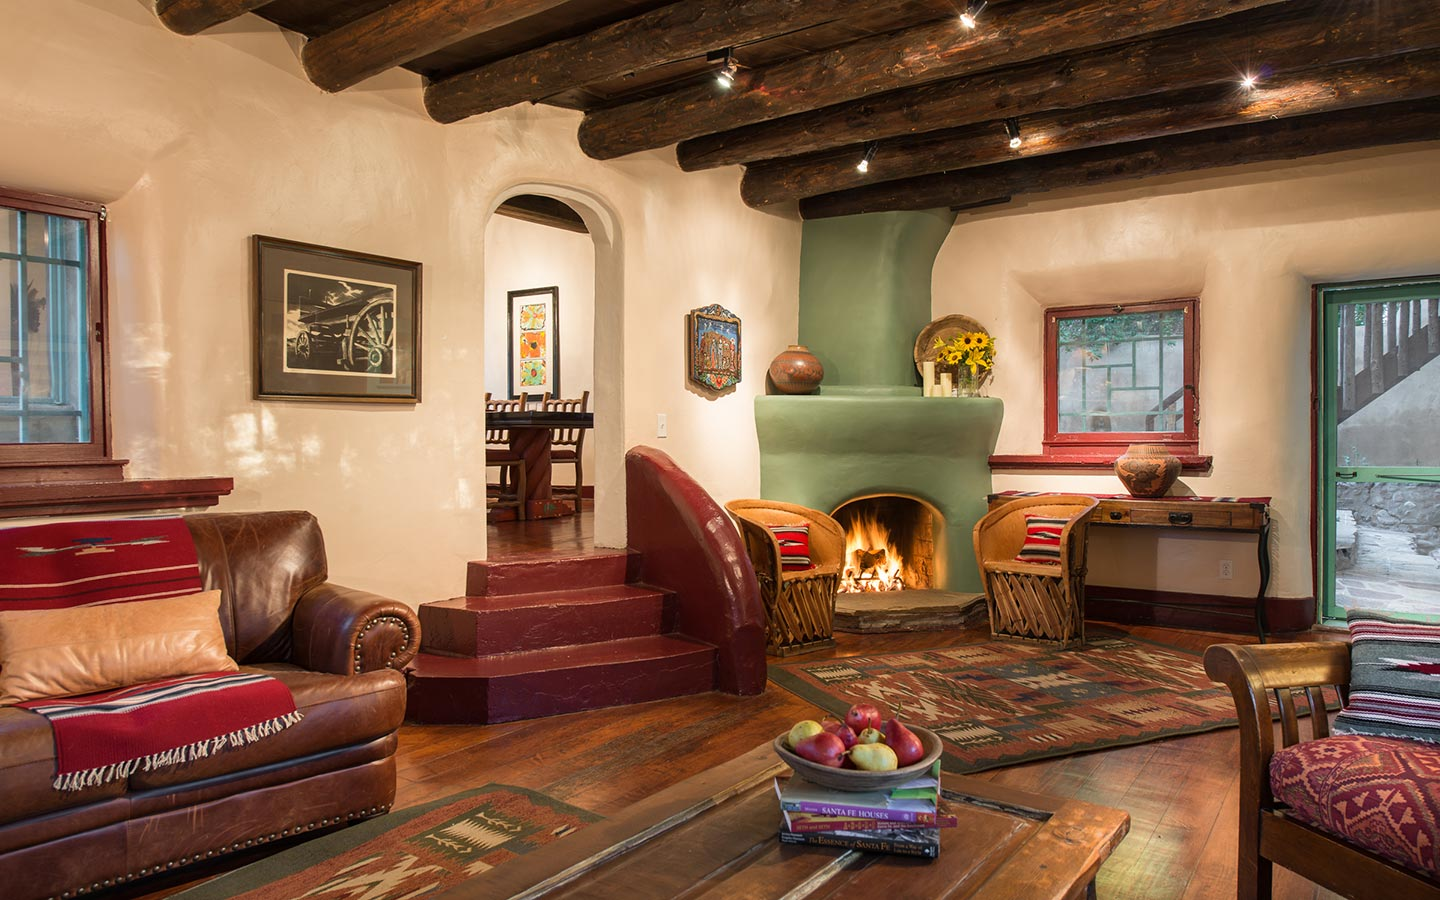 Santa Fe Bed and Breakfast Sitting Room